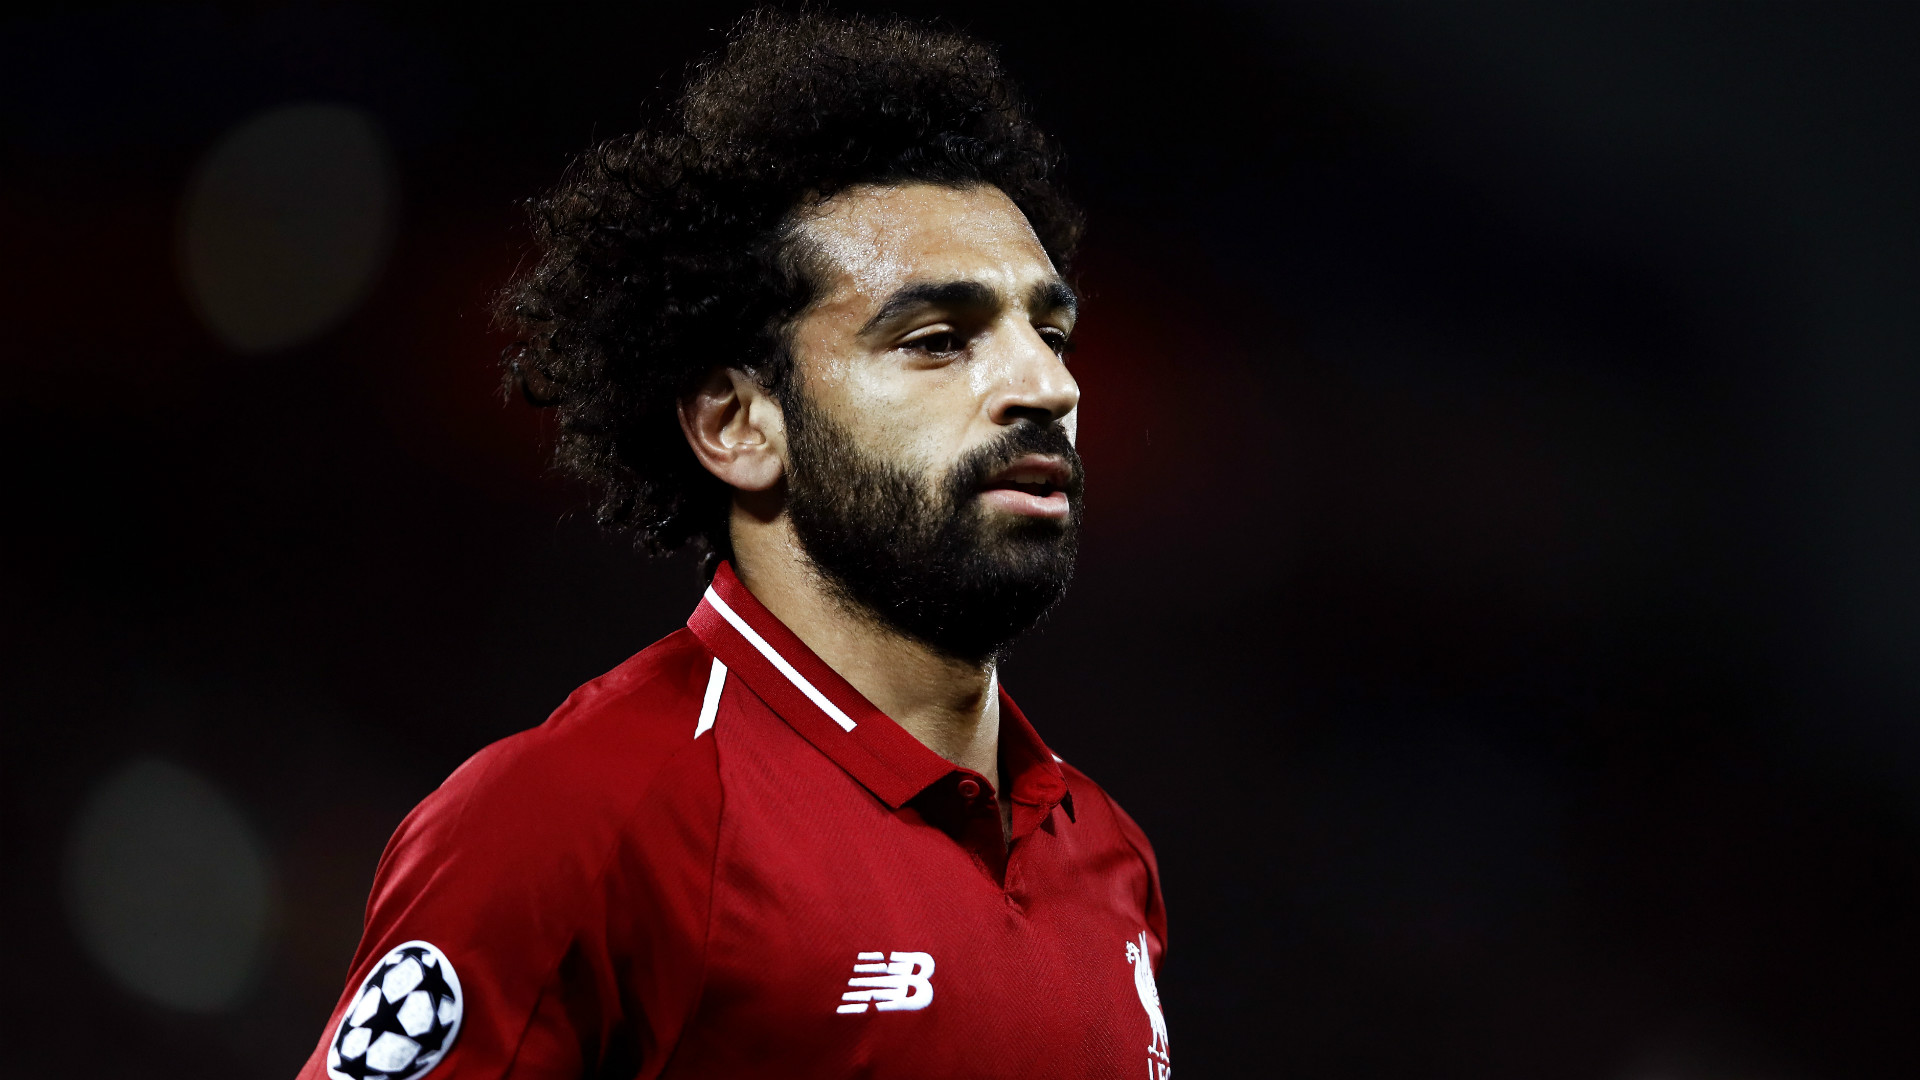 Jamie Carragher nails it with assessment of Mohamed Salah's 'slump' in form